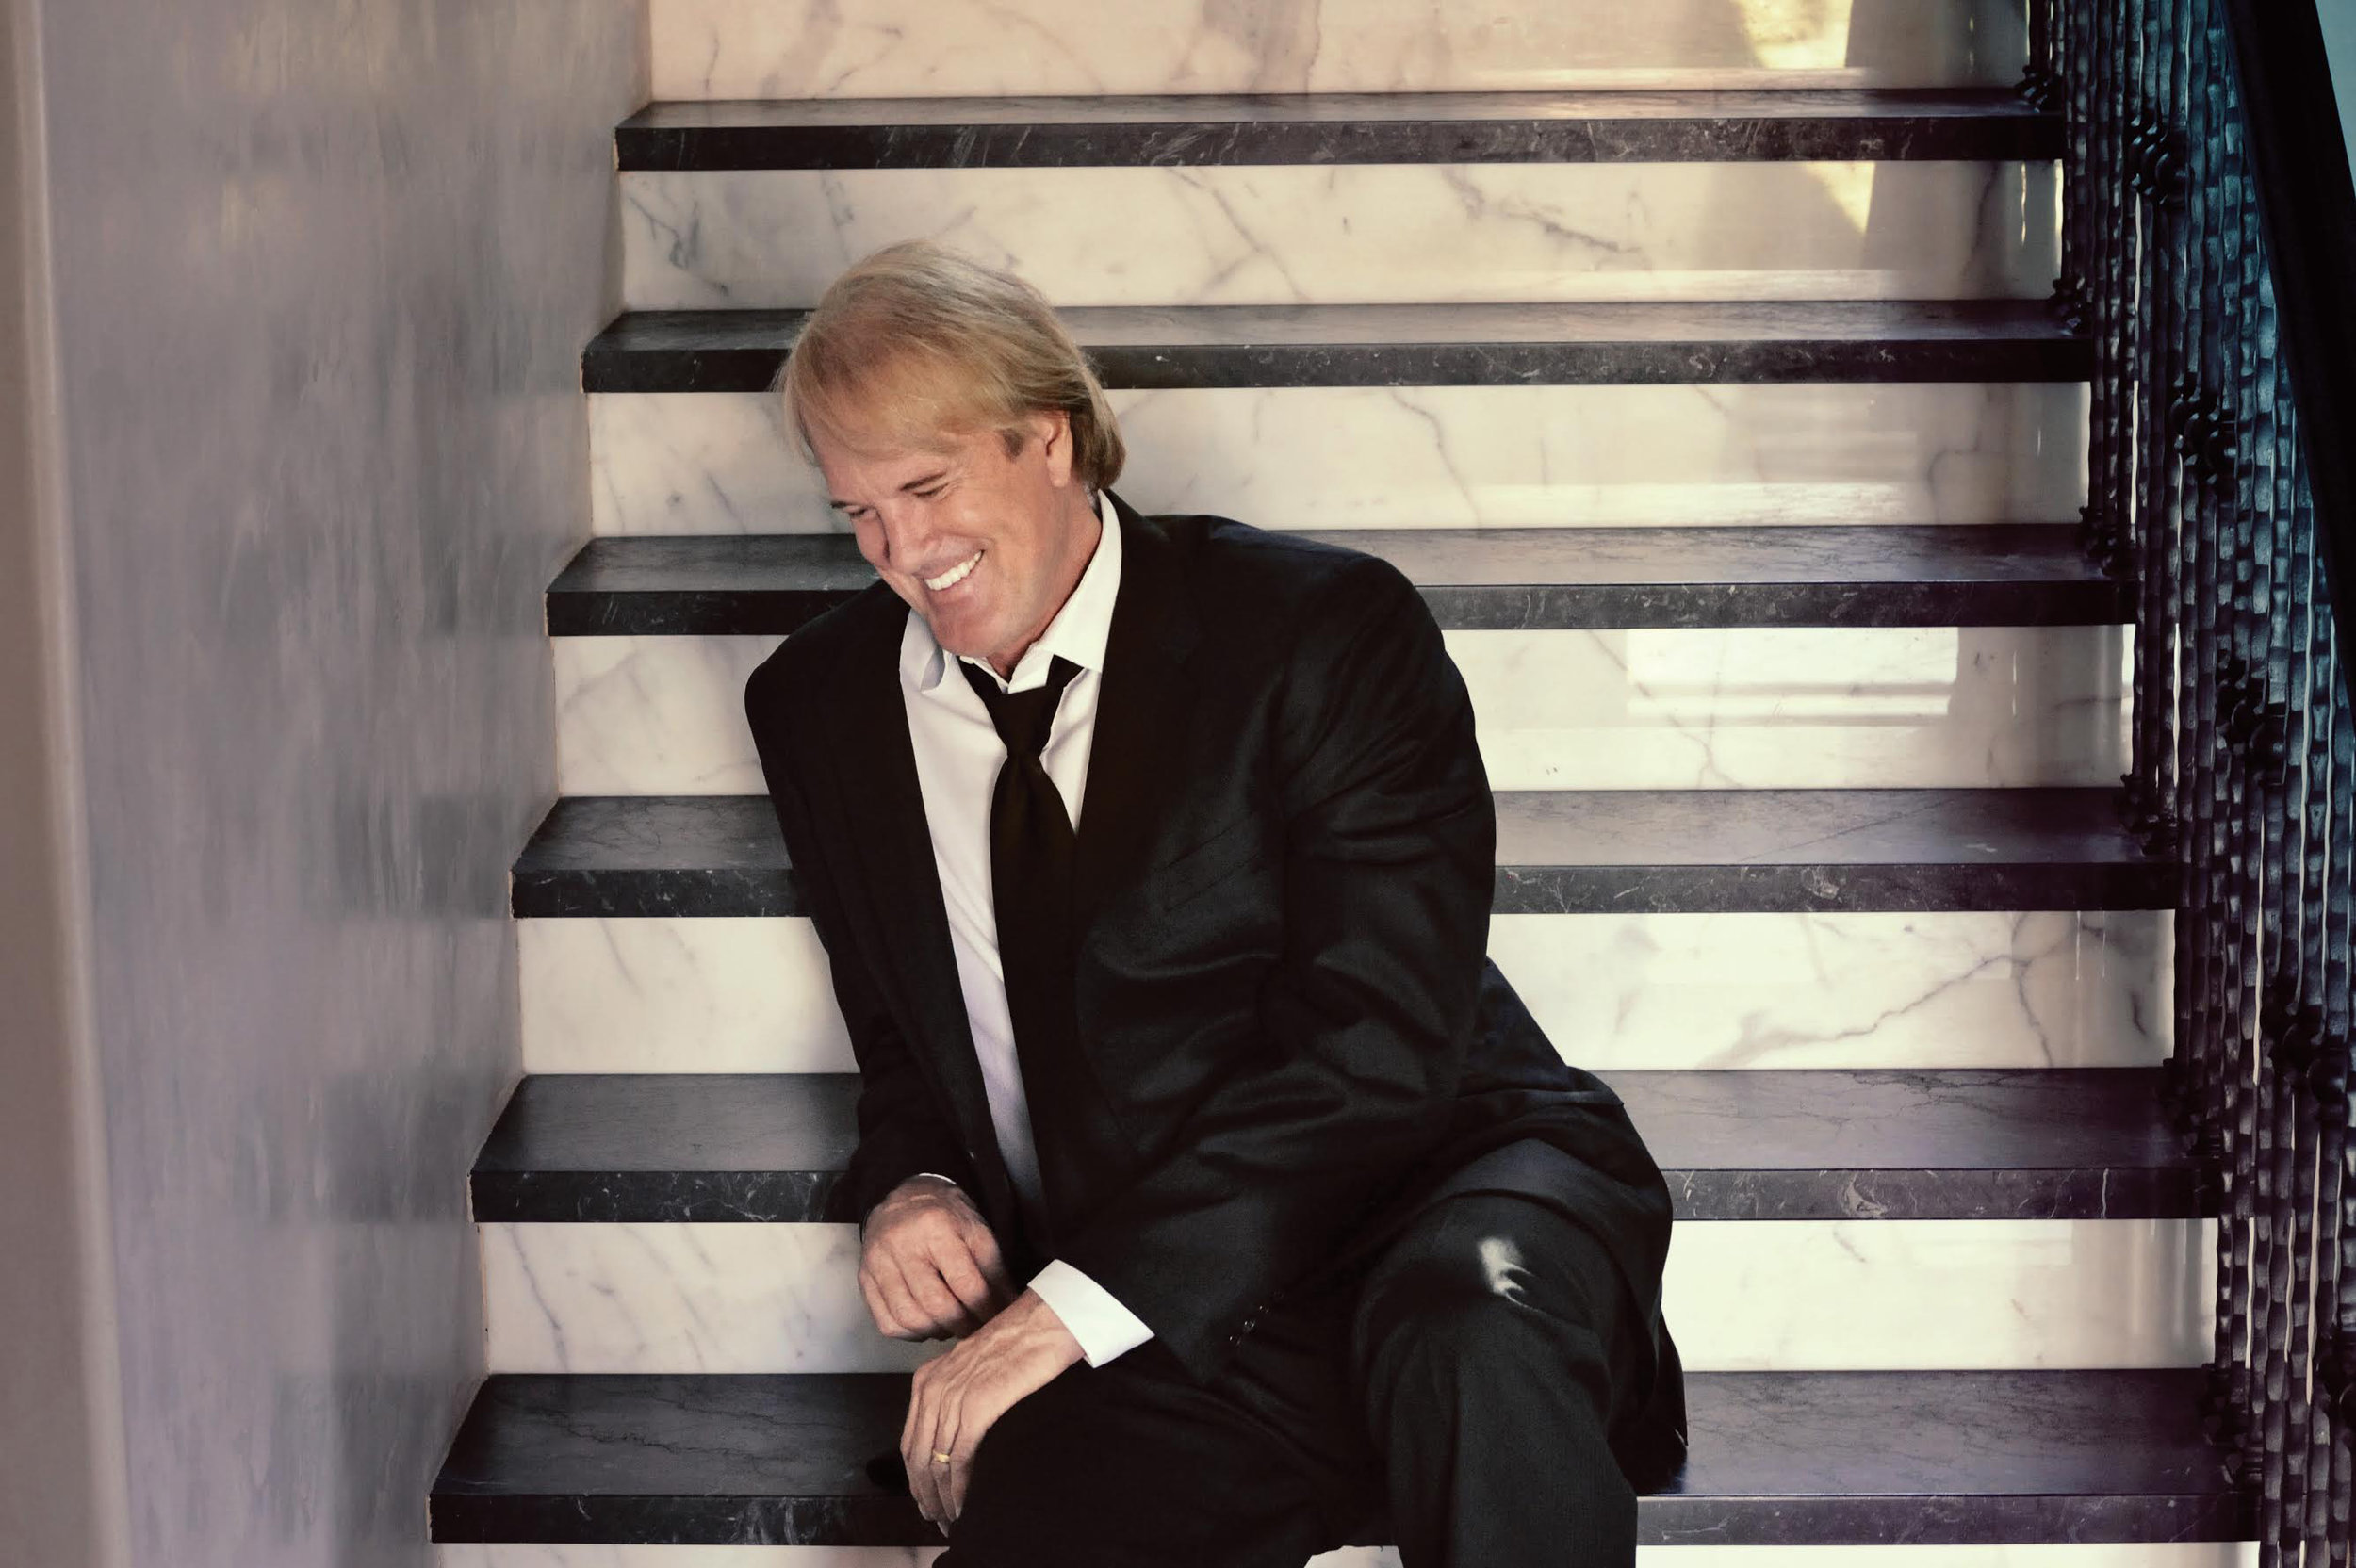 John Tesh is a composer, musician and broadcaster who has earned countless awards and honors including six music Emmys and three gold records. He's also headlined multiple PBS specials and sold 8 million records. (Photo: John Tesh)<br><p></p><p></p><p></p><p></p><p></p><p></p>